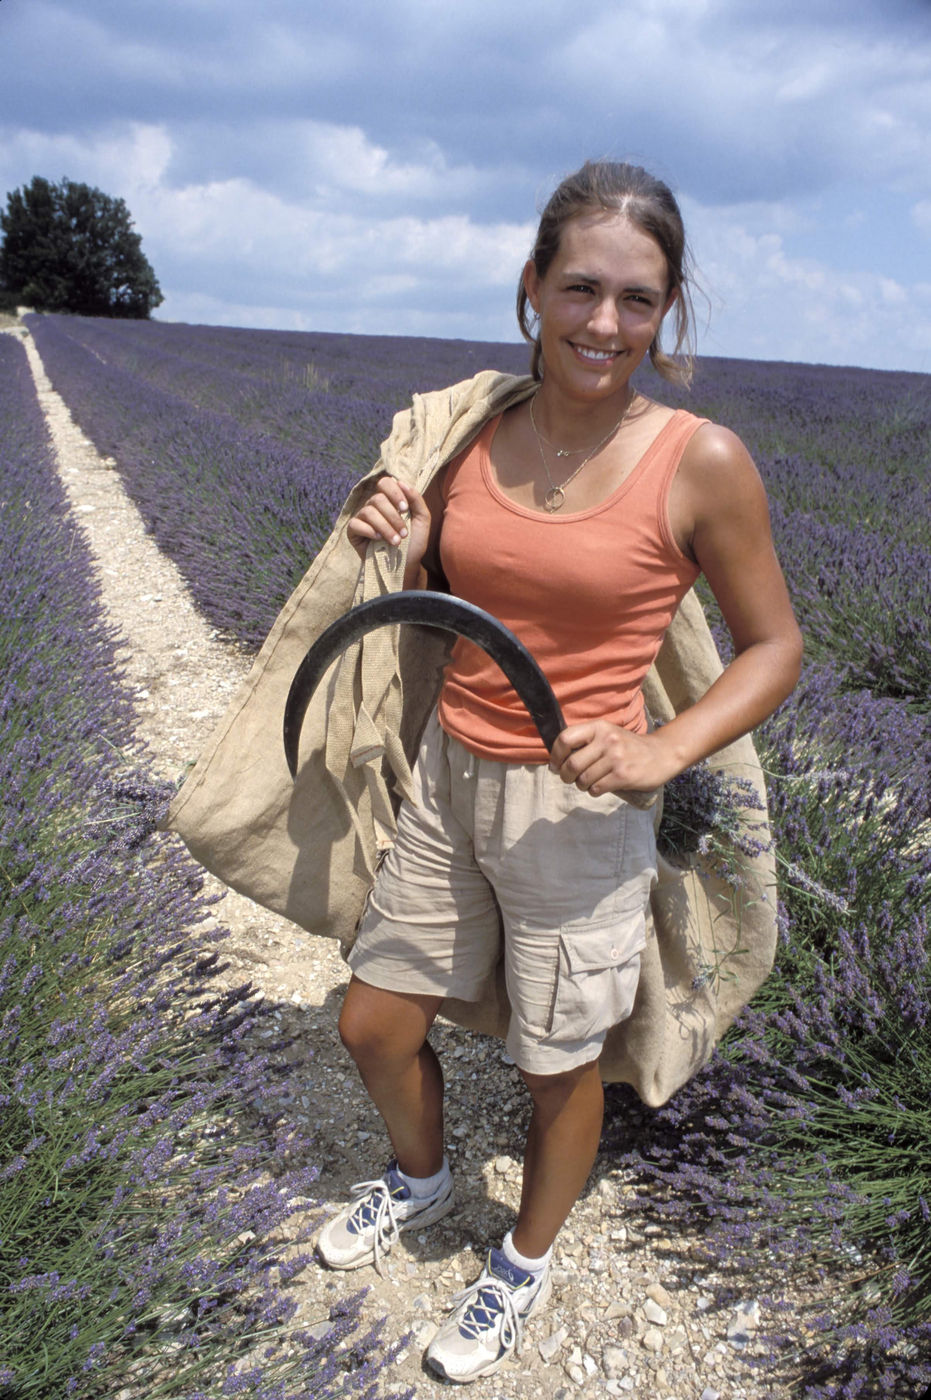 Harvesting Lavender Flower By Hand